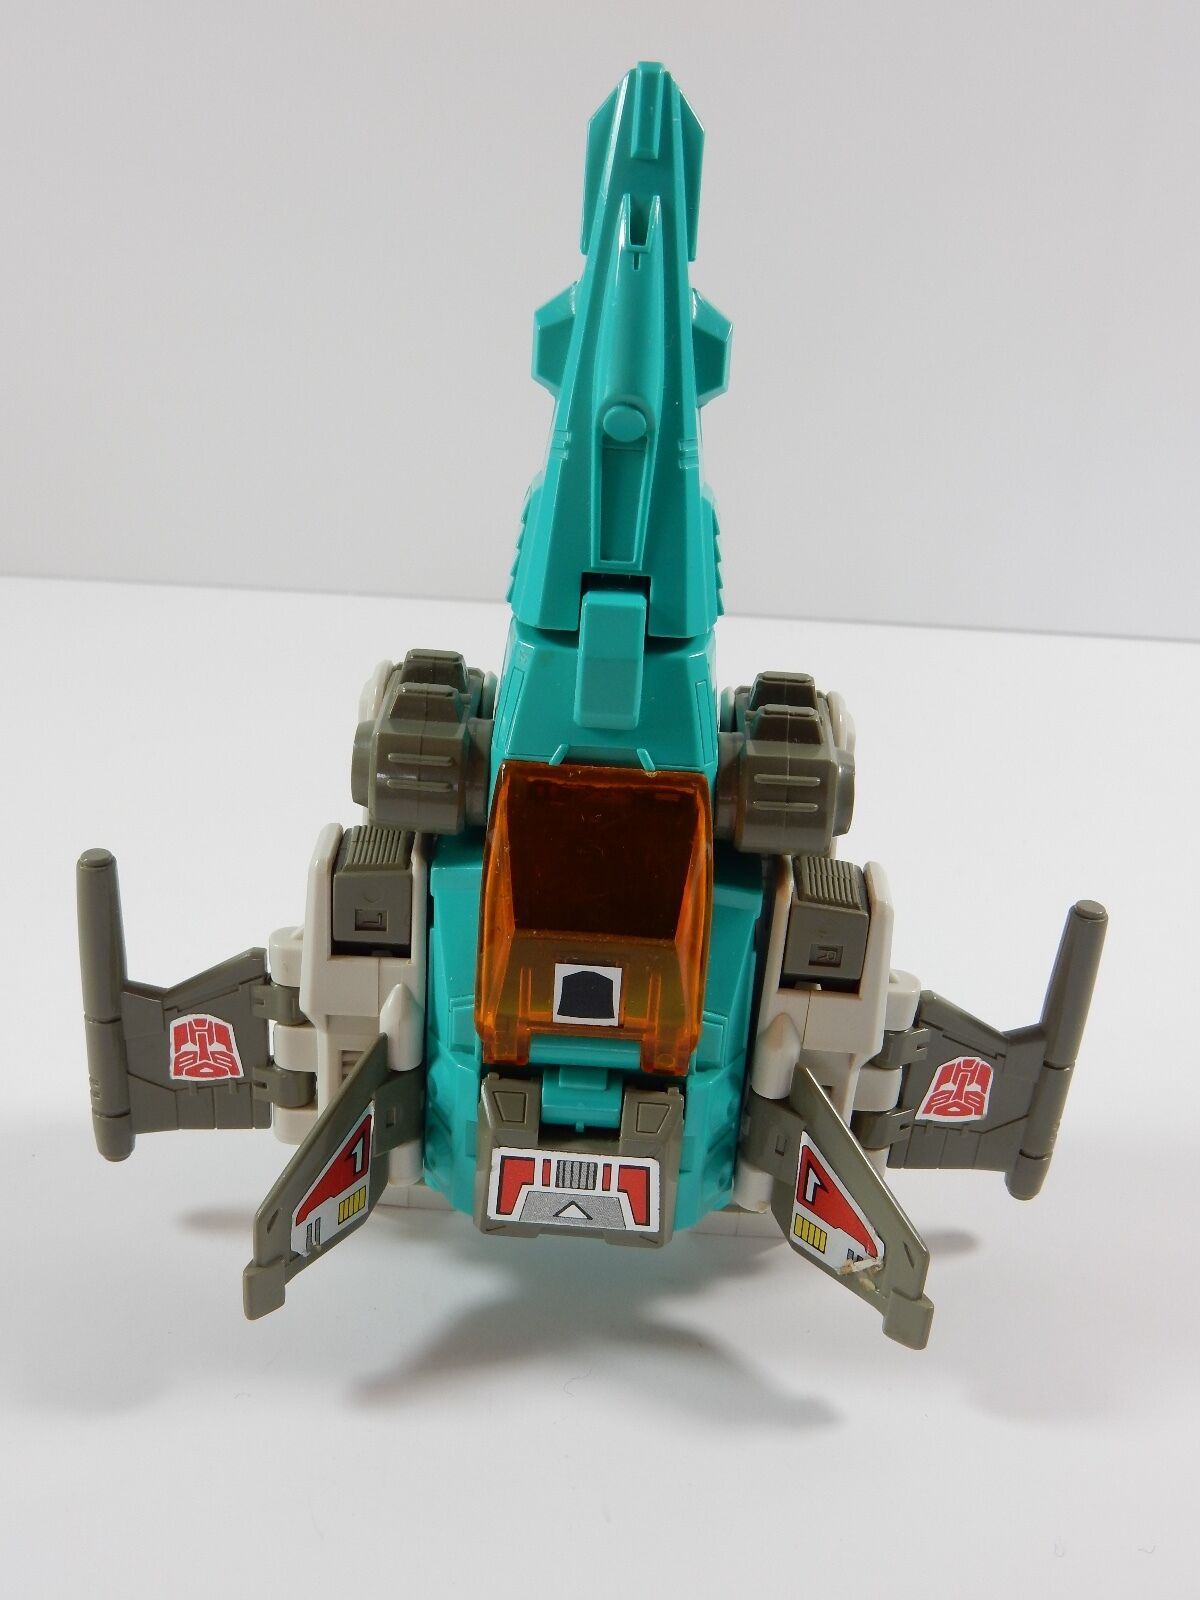 Hasbro 1987 Transformers G1 Headmasters Brainstorm Figure